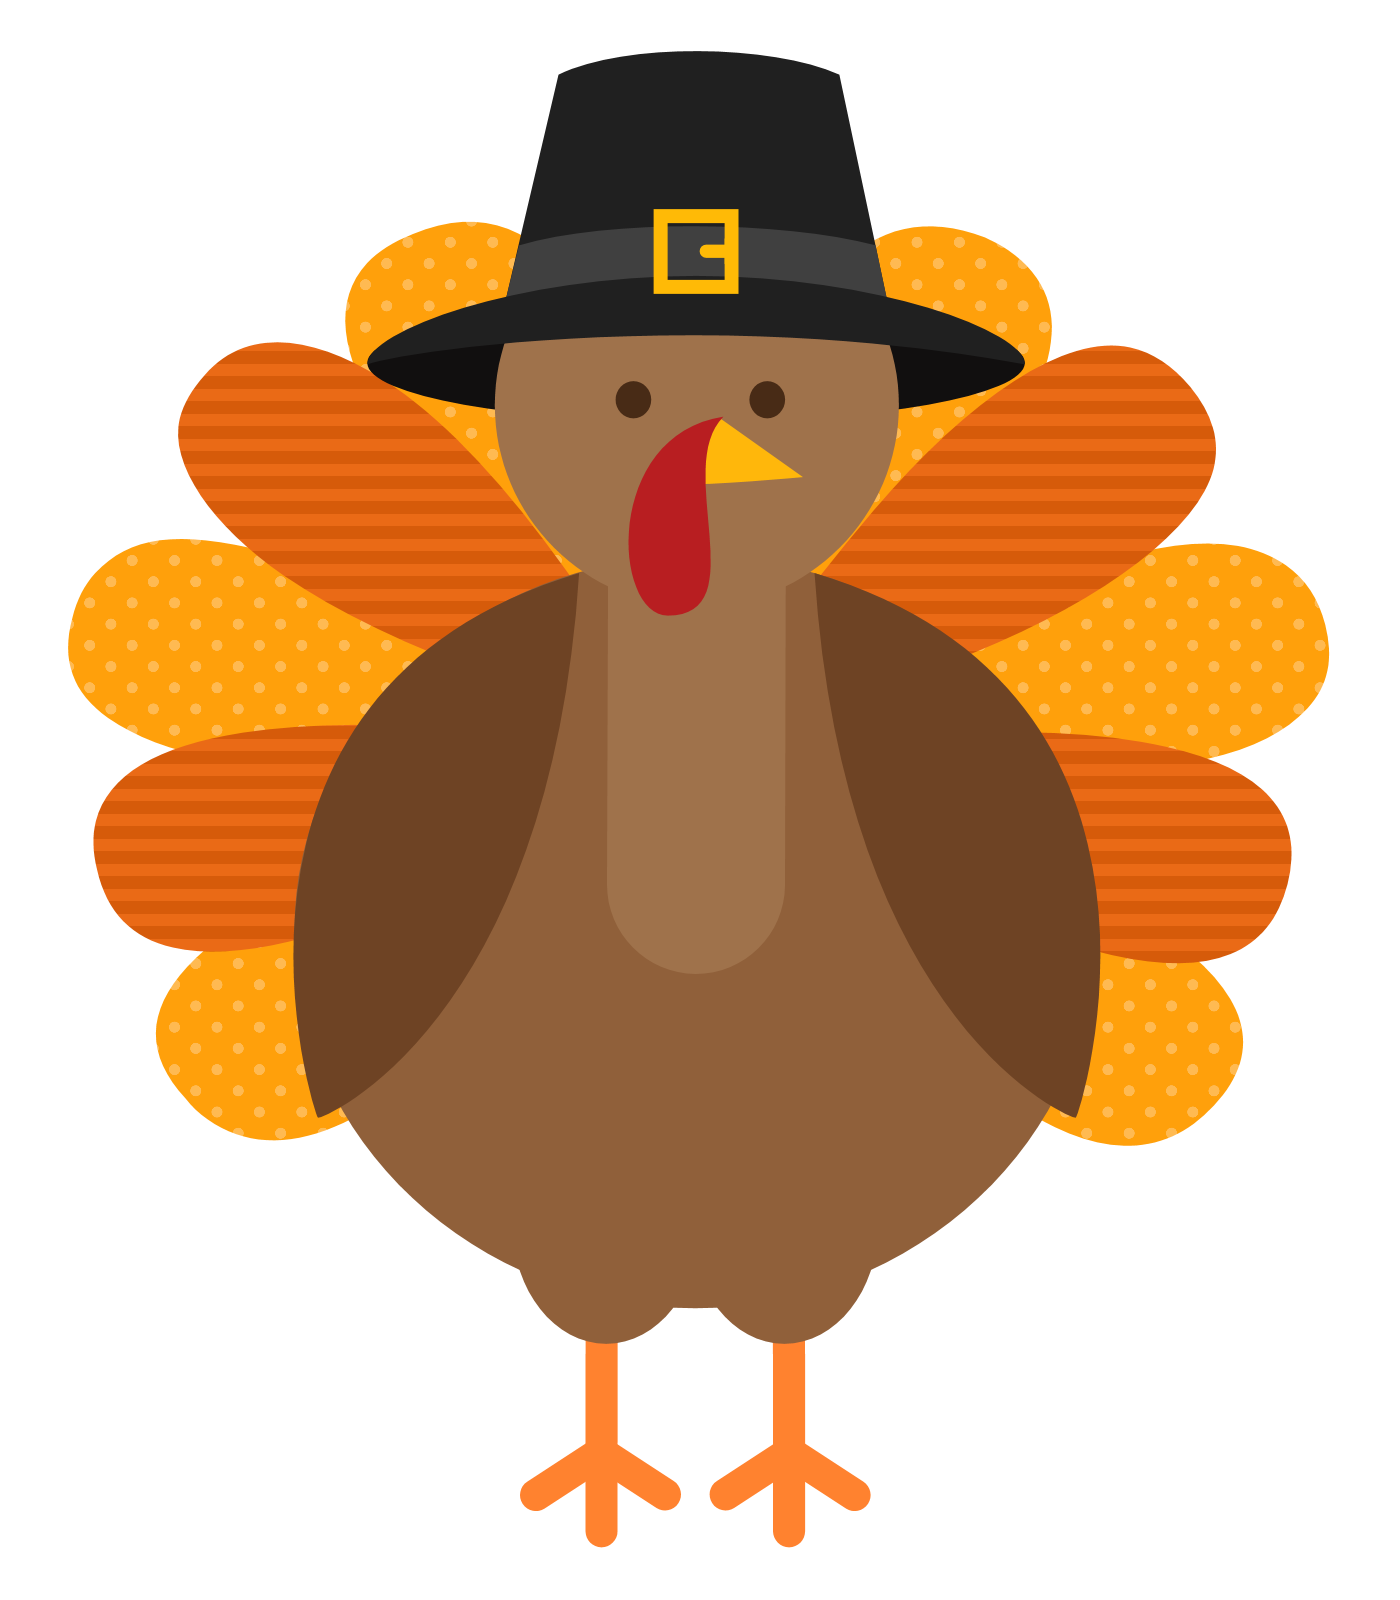 Happy thanksgiving solomon clipart jpg transparent stock Character day in prek clipart - ClipartFox jpg transparent stock